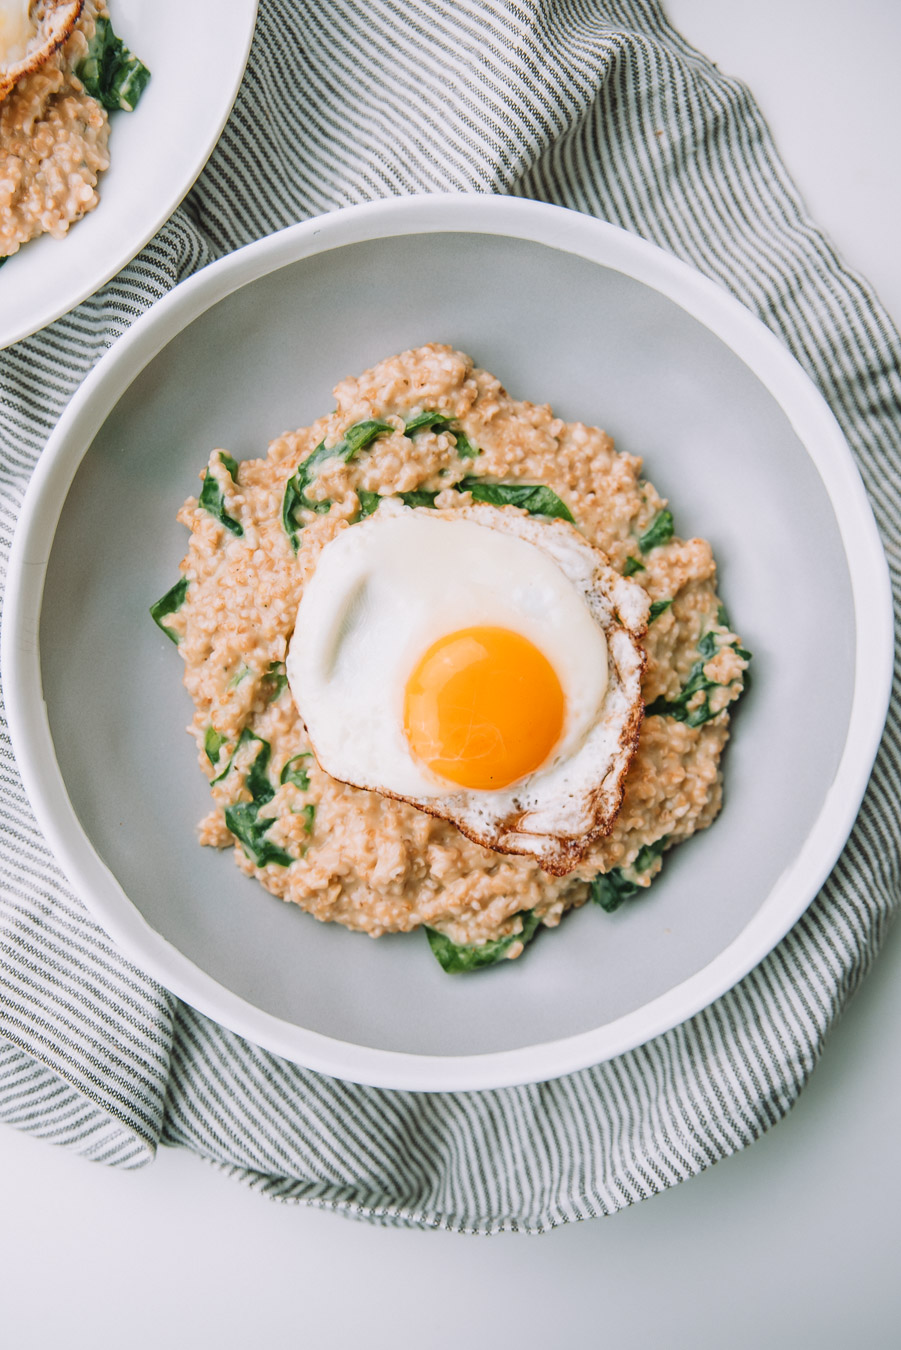 Bowl of Savory Spinach Oatmeal with Fried Eggs